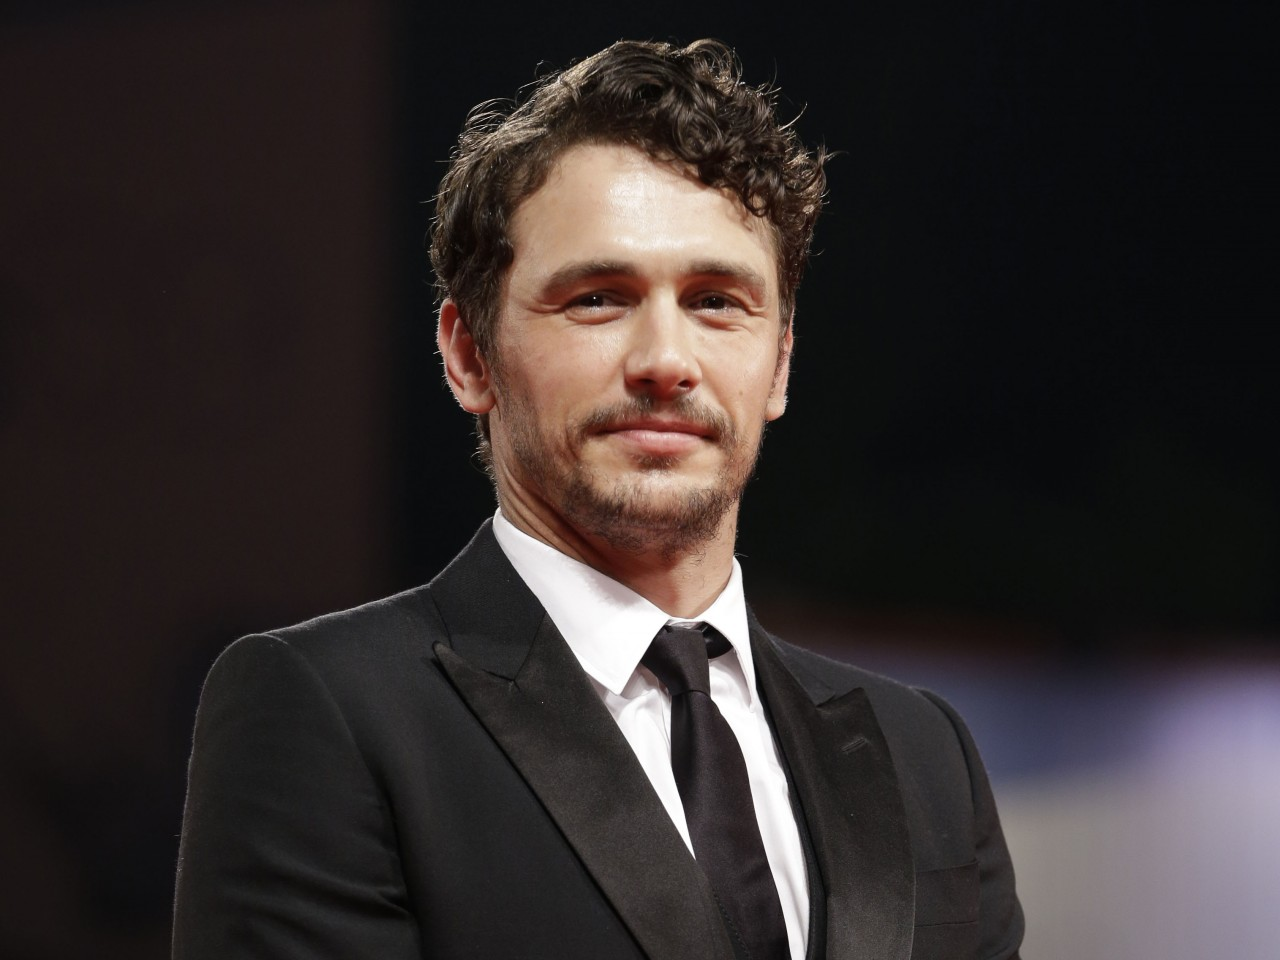 People james franco.jpeg 1280x960